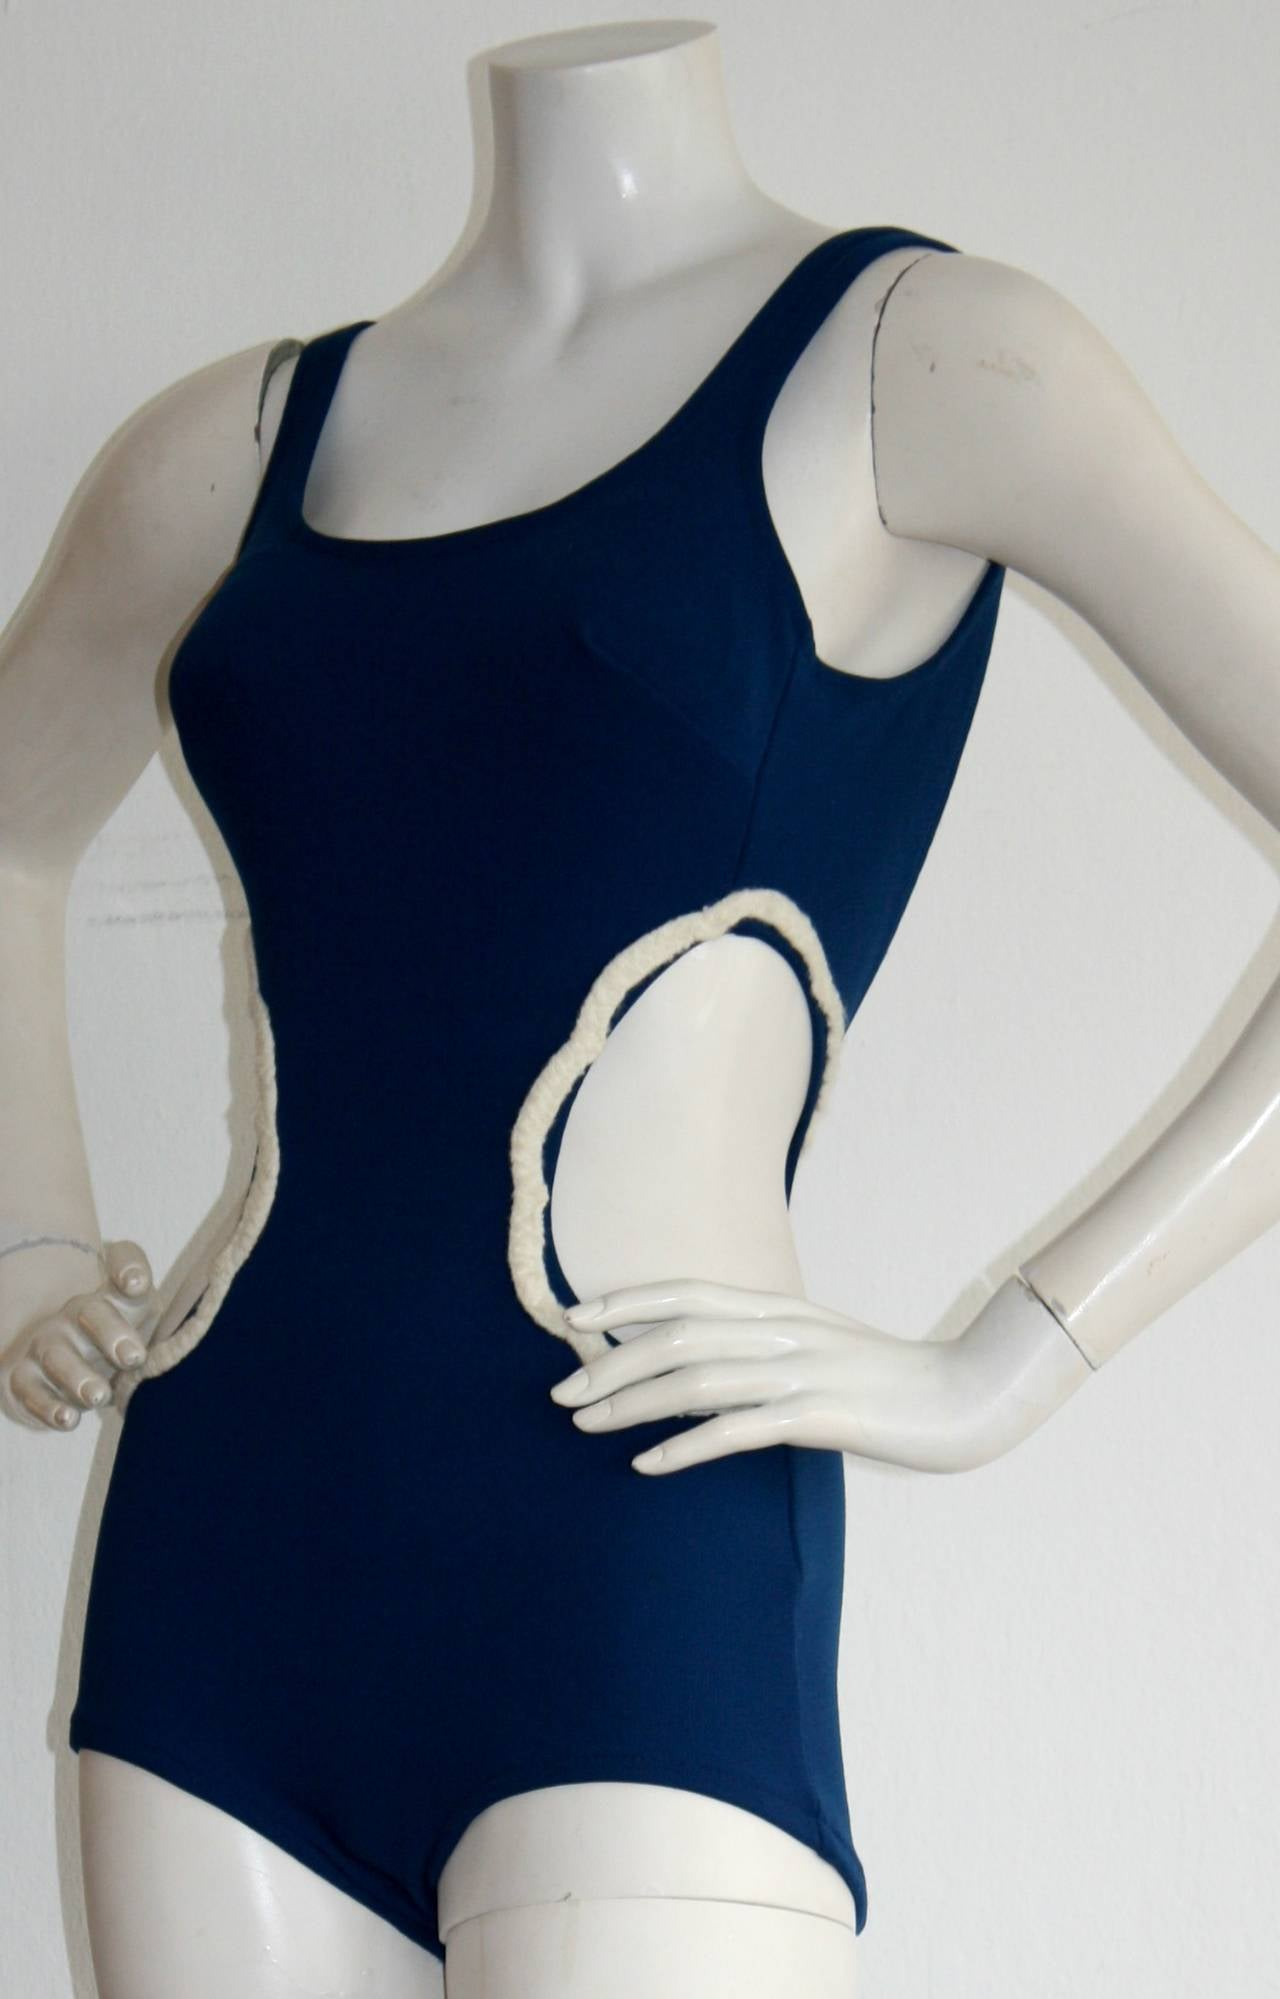 1960s Vintage Oleg Cassini ' Peter Pan ' Space Age Cut-Out Swimsuit In Excellent Condition For Sale In San Francisco, CA